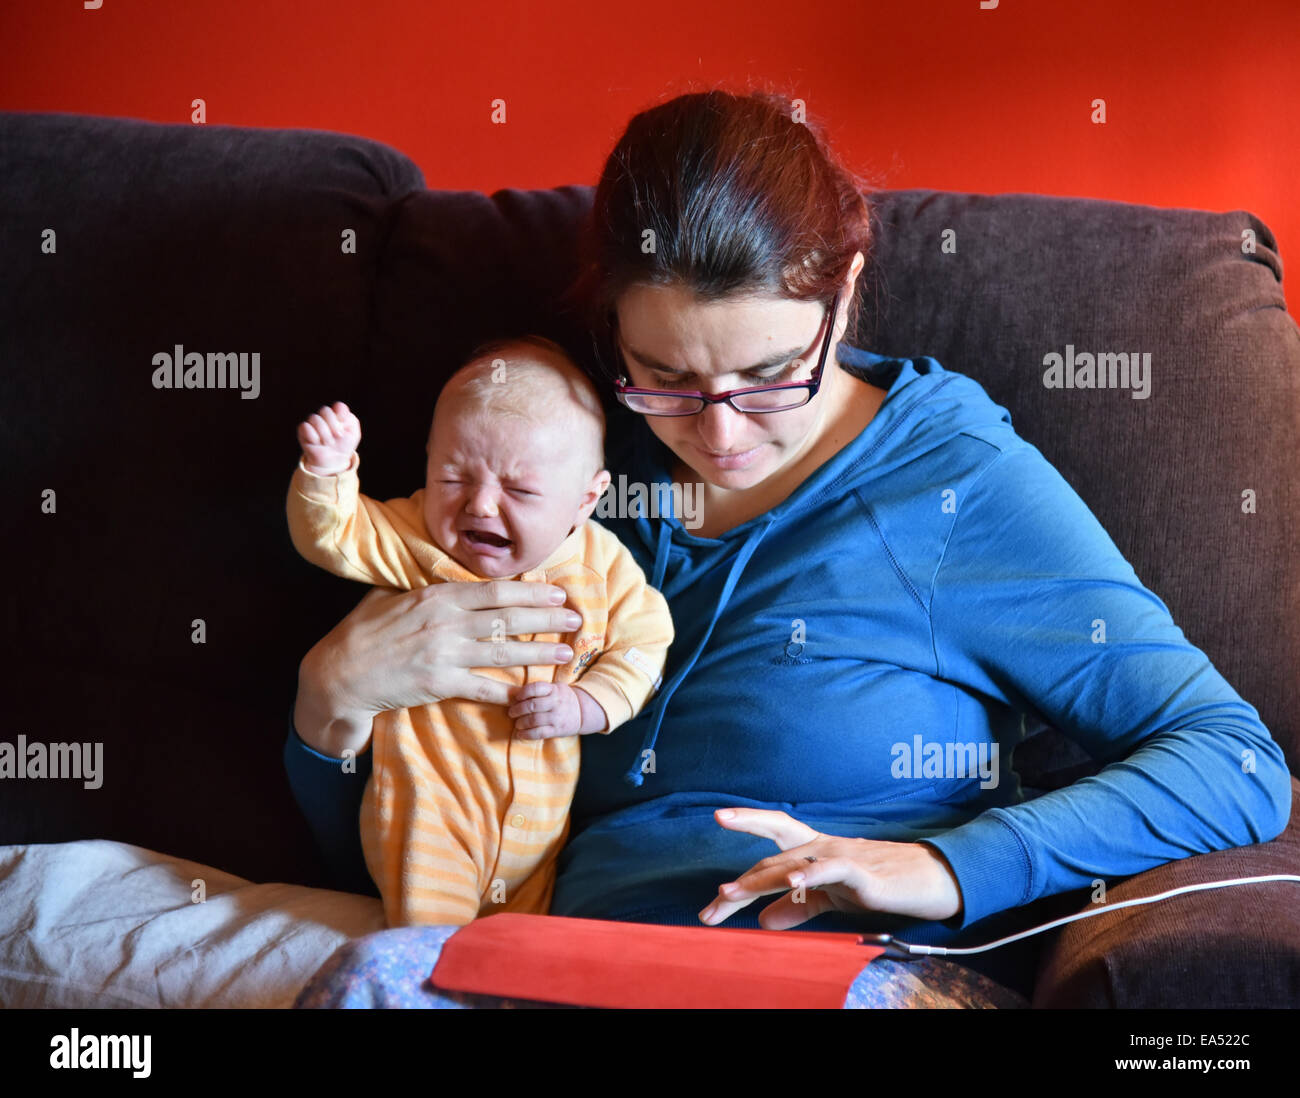 a-mother-in-pyjamas-using-an-ipad-and-ignoring-her-crying-baby-EA522C.jpg